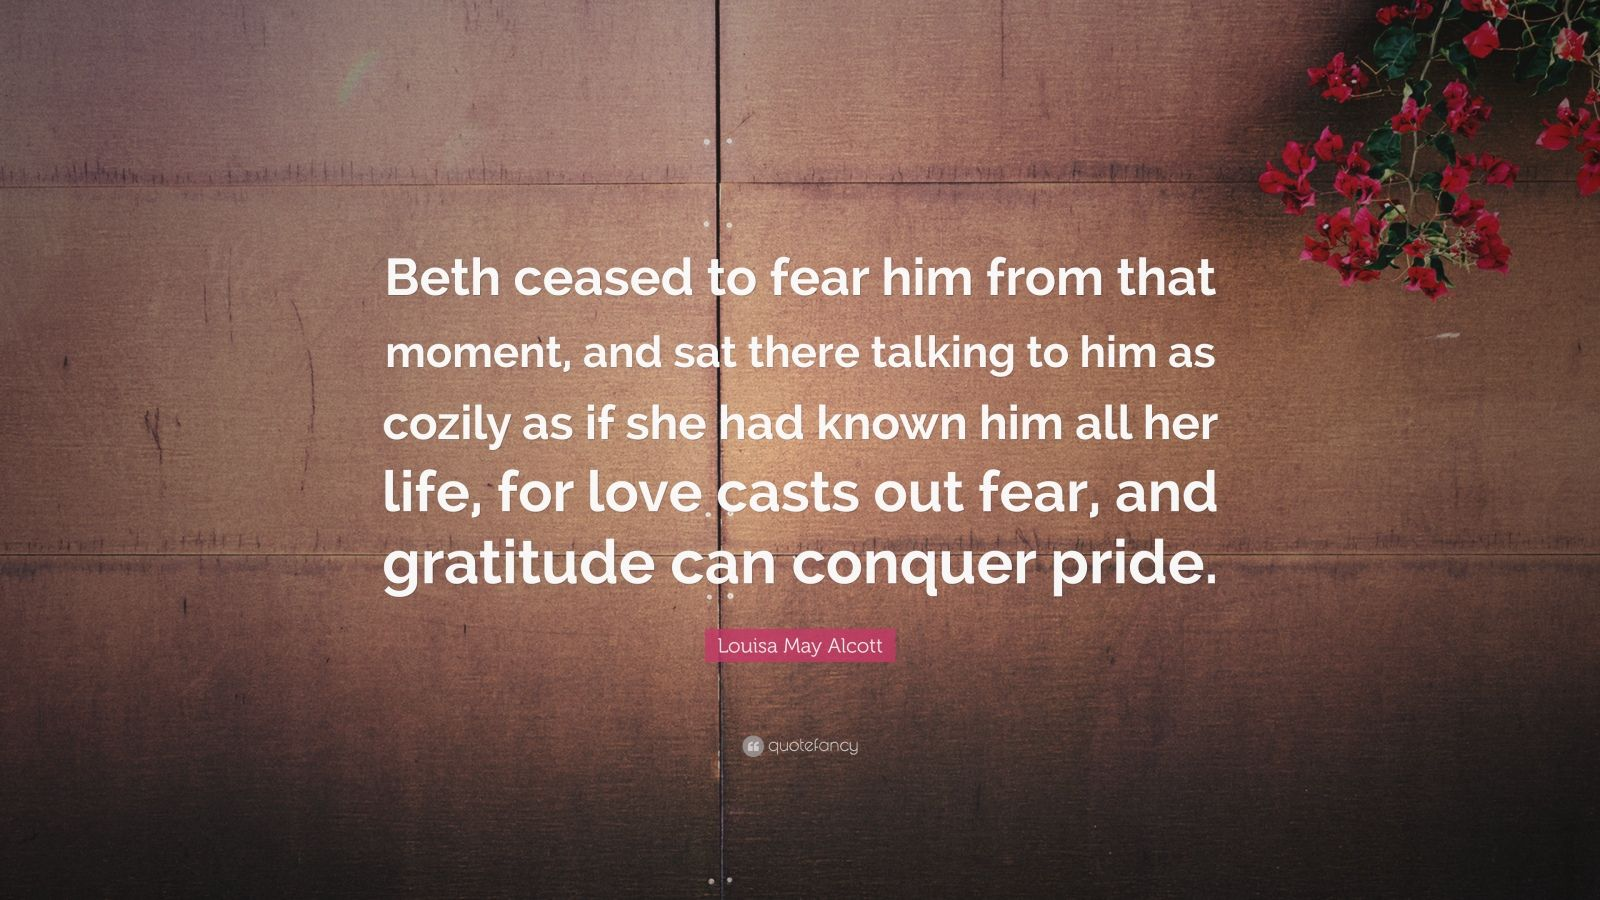 "Louisa May Alcott Quote: ""Beth ceased to fear him from that moment, and sat there talking to him as cozily as if she had known him all her life, for love casts out fear, and gratitude can conquer pride."""